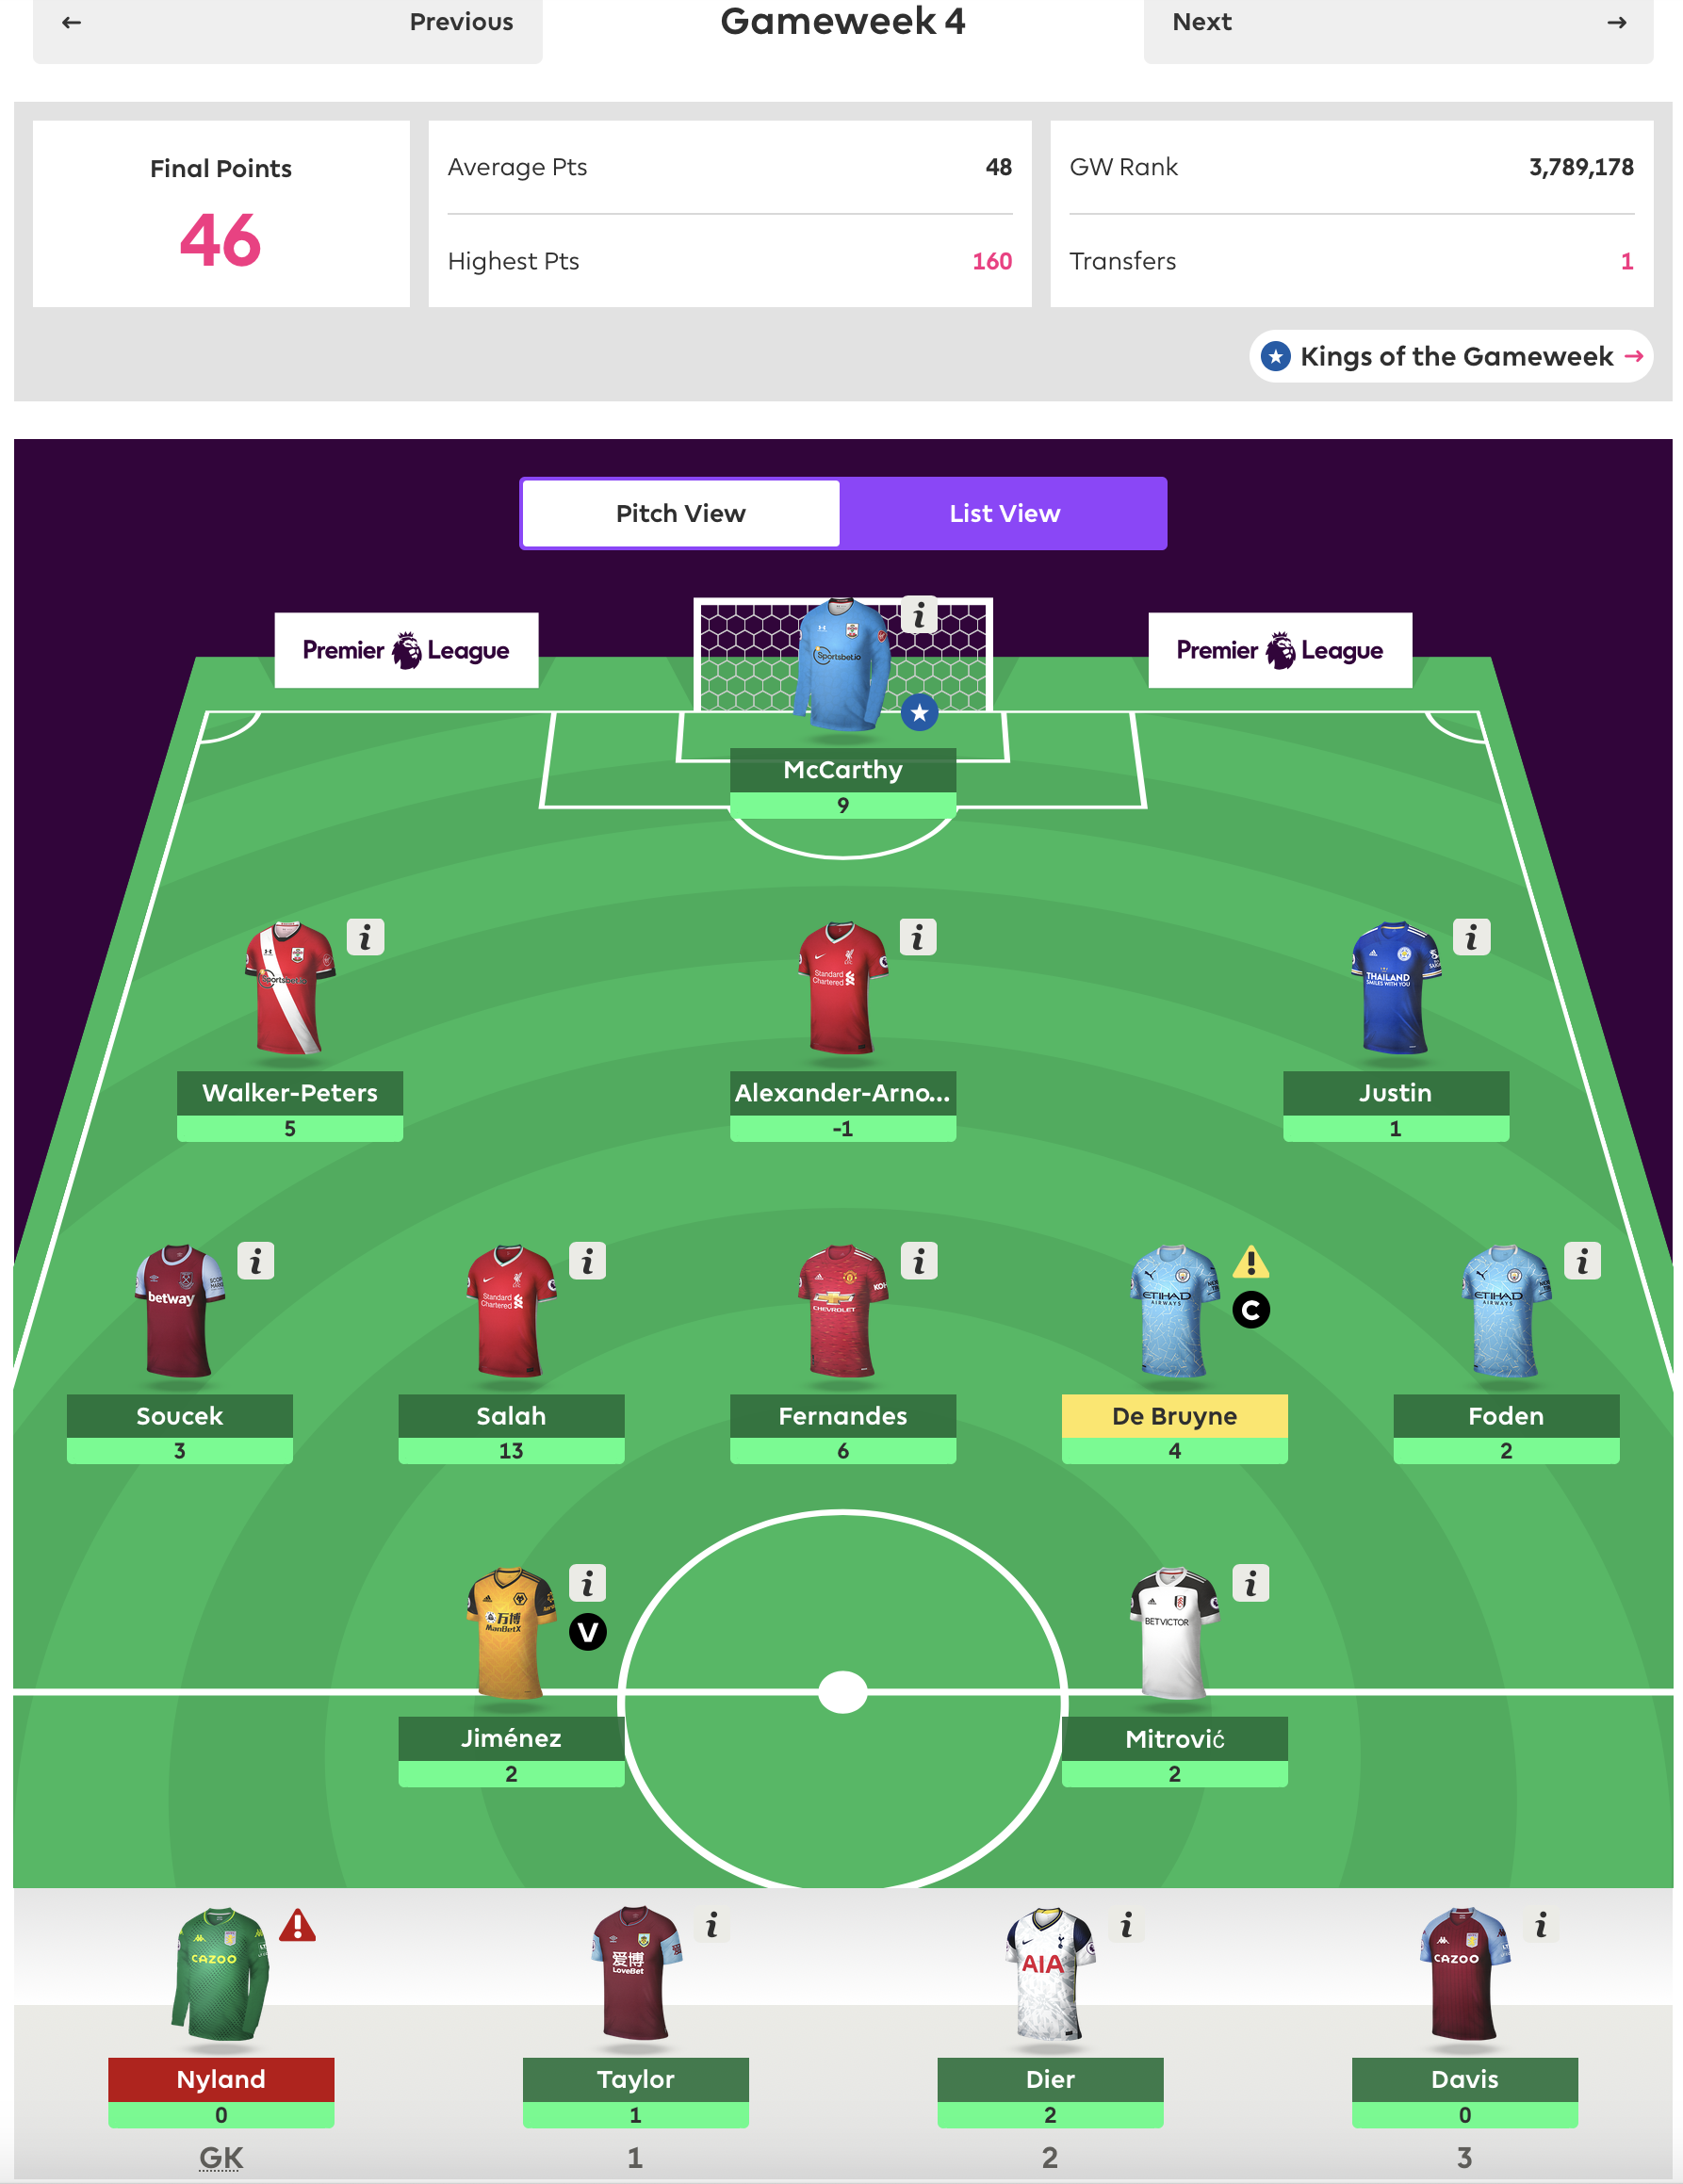 FPL Gameweek 4 Review